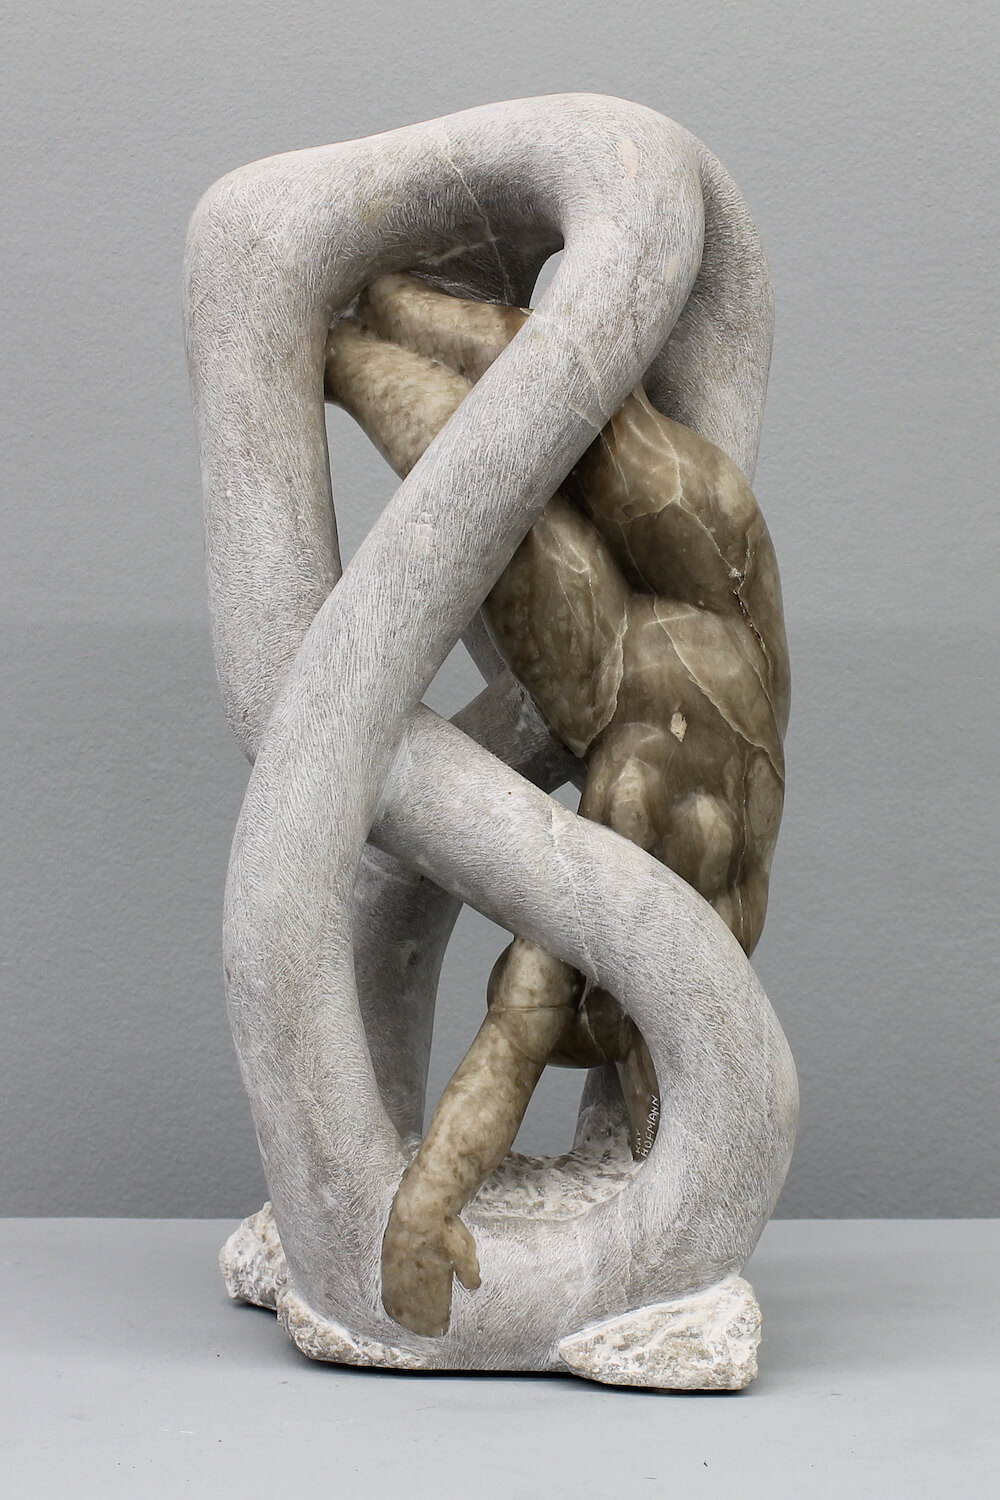 Hofmann, Inside the Coil, 2005 (KH 05.001) A